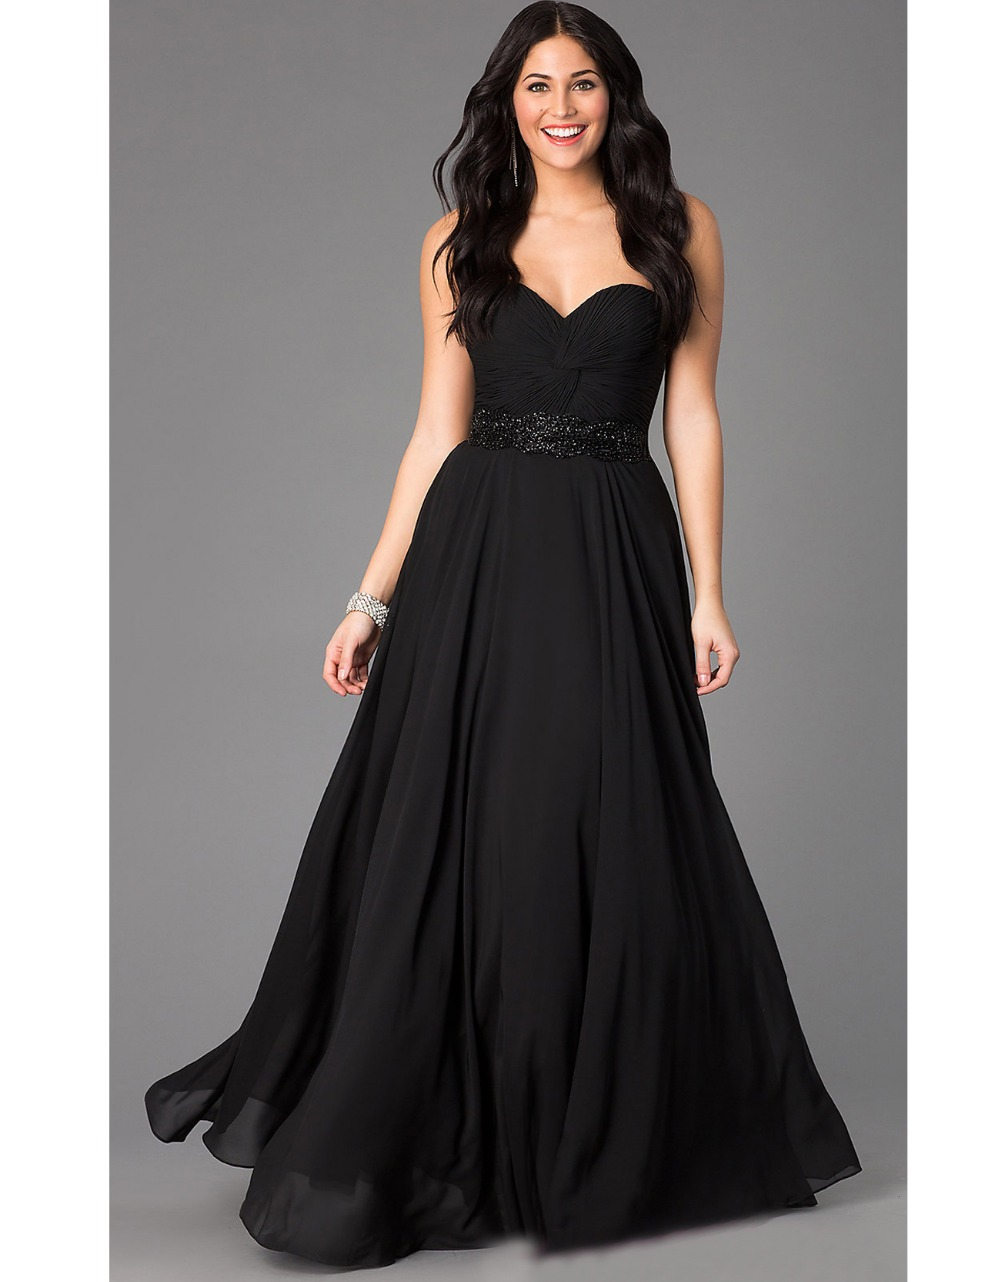 rcbzrcbz: 2 Piece Plus size prom clothes